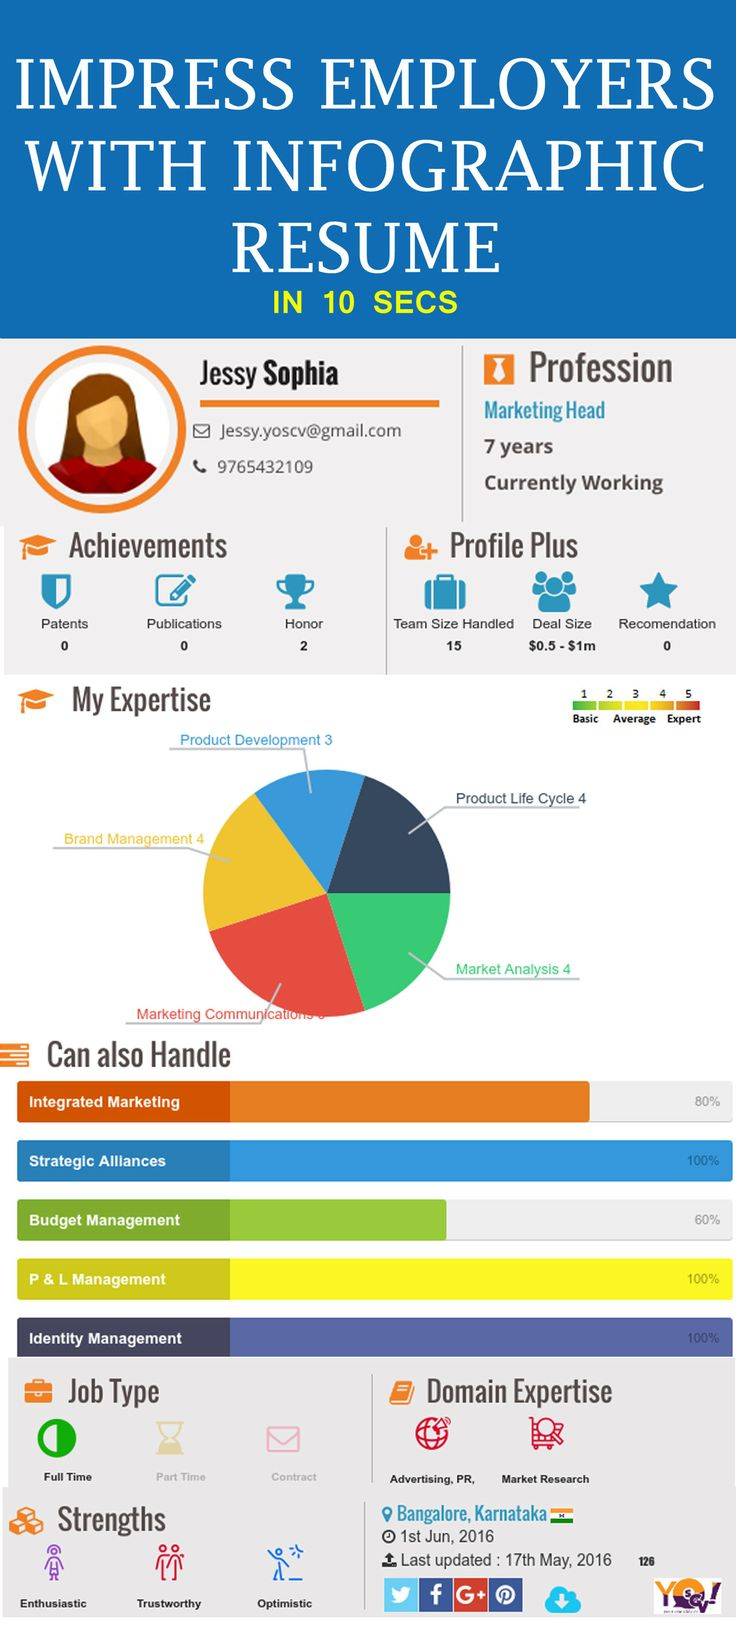 best images about yoscv create infographic resume online how to impress employers infographic resume online at yoscv